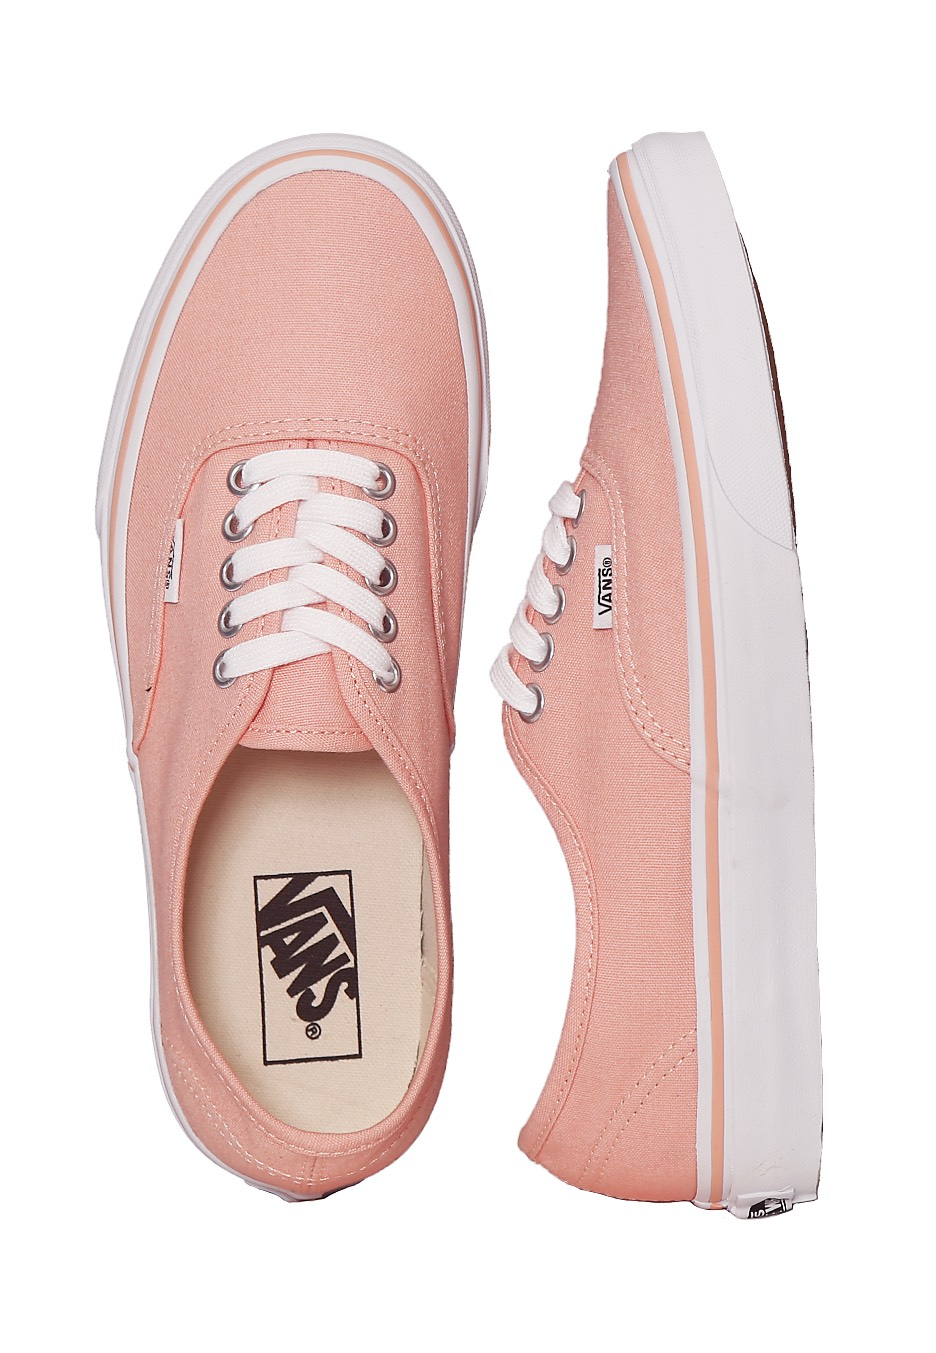 Vans - Authentic Tropical Peach/True White - Girl Shoes - Impericon.com  Worldwide